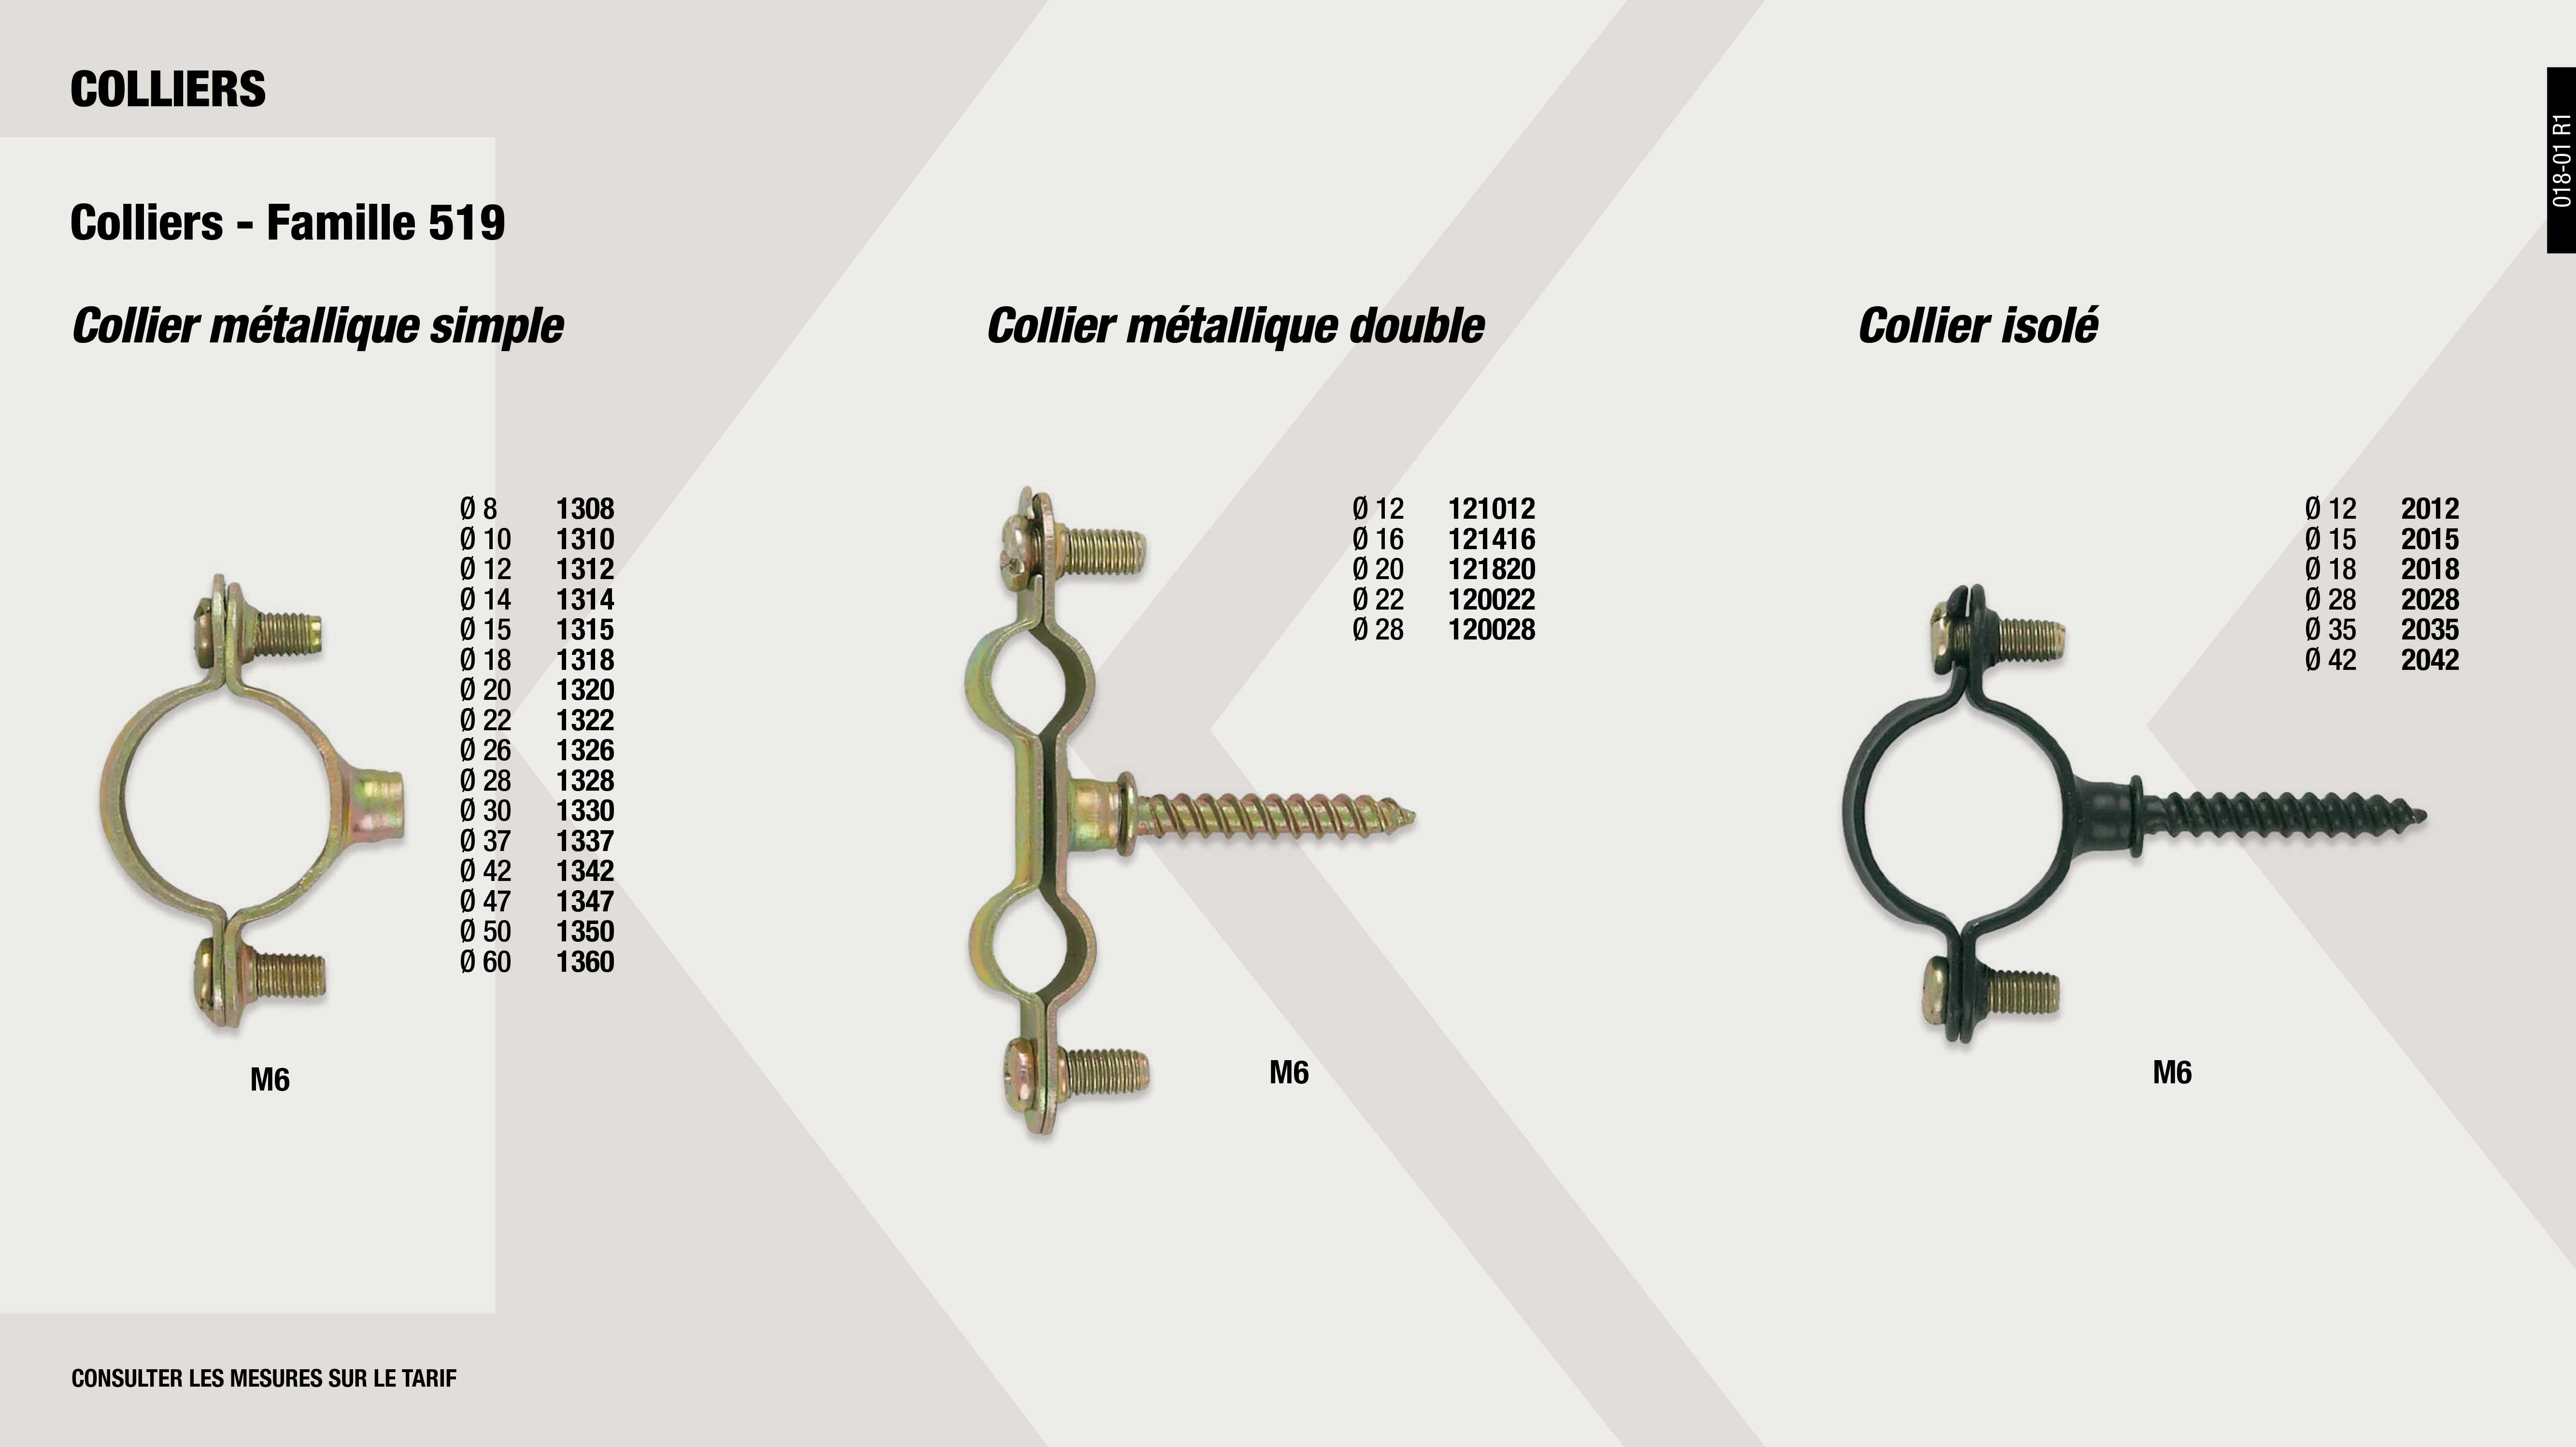 COLLIER METALLIQUE SIMPLE 24 MM                             ,  									COLLIER METALLIQUE SIMPLE 26 MM                             ,  									COLLIER METALLIQUE SIMPLE 50 MM                             ,  									COLLIER 18 MM ISOLE NOIR M6                                 ,  									COLLIER METALLIQUE DOUBLE 22MM                              ,  									COLLIER 28 MM ISOLE NOIR M6                                 ,  									COLLIER METALLIQUE SIMPLE 20 MM                             ,  									COLLIER METALLIQUE SIMPLE 30 MM                             ,  									COLLIER 15 MM ISOLE NOIR M6                                 ,  									COLLIER METALLIQUE DOUBLE 12 MM                             ,  									COLLIER METALLIQUE SIMPLE 15 MM                             ,  									COLLIER METALLIQUE SIMPLE 28 MM                             ,  									COLLIER METALLIQUE SIMPLE 47 MM                             ,  									COLLIER METALLIQUE SIMPLE 37 MM                             ,  									COLLIER METALLIQUE SIMPLE 60 MM                             ,  									COLLIER 35 MM ISOLE NOIR M6                                 ,  									COLLIER METALLIQUE DOUBLE 28 MM                             ,  									COLLIER METALLIQUE DOUBLE 16 MM                             ,  									COLLIER METALLIQUE SIMPLE 14 MM                             ,  									COLLIER METALLIQUE SIMPLE 22 MM                             ,  									COLLIER 12 MM ISOLE NOIR M6                                 ,  									COLLIER 42 MM ISOLE NOIR M6                                 ,  									COLLIER METALLIQUE DOUBLE 20 MM                             ,  									COLLIER METALLIQUE SIMPLE 8 MM                              ,  									COLLIER METALLIQUE SIMPLE 12 MM                             ,  									COLLIER METALLIQUE SIMPLE 18 MM                             ,  									COLLIER METALLIQUE SIMPLE 10 MM                             ,  									COLLIER METALLIQUE SIMPLE 42 MM                             ,